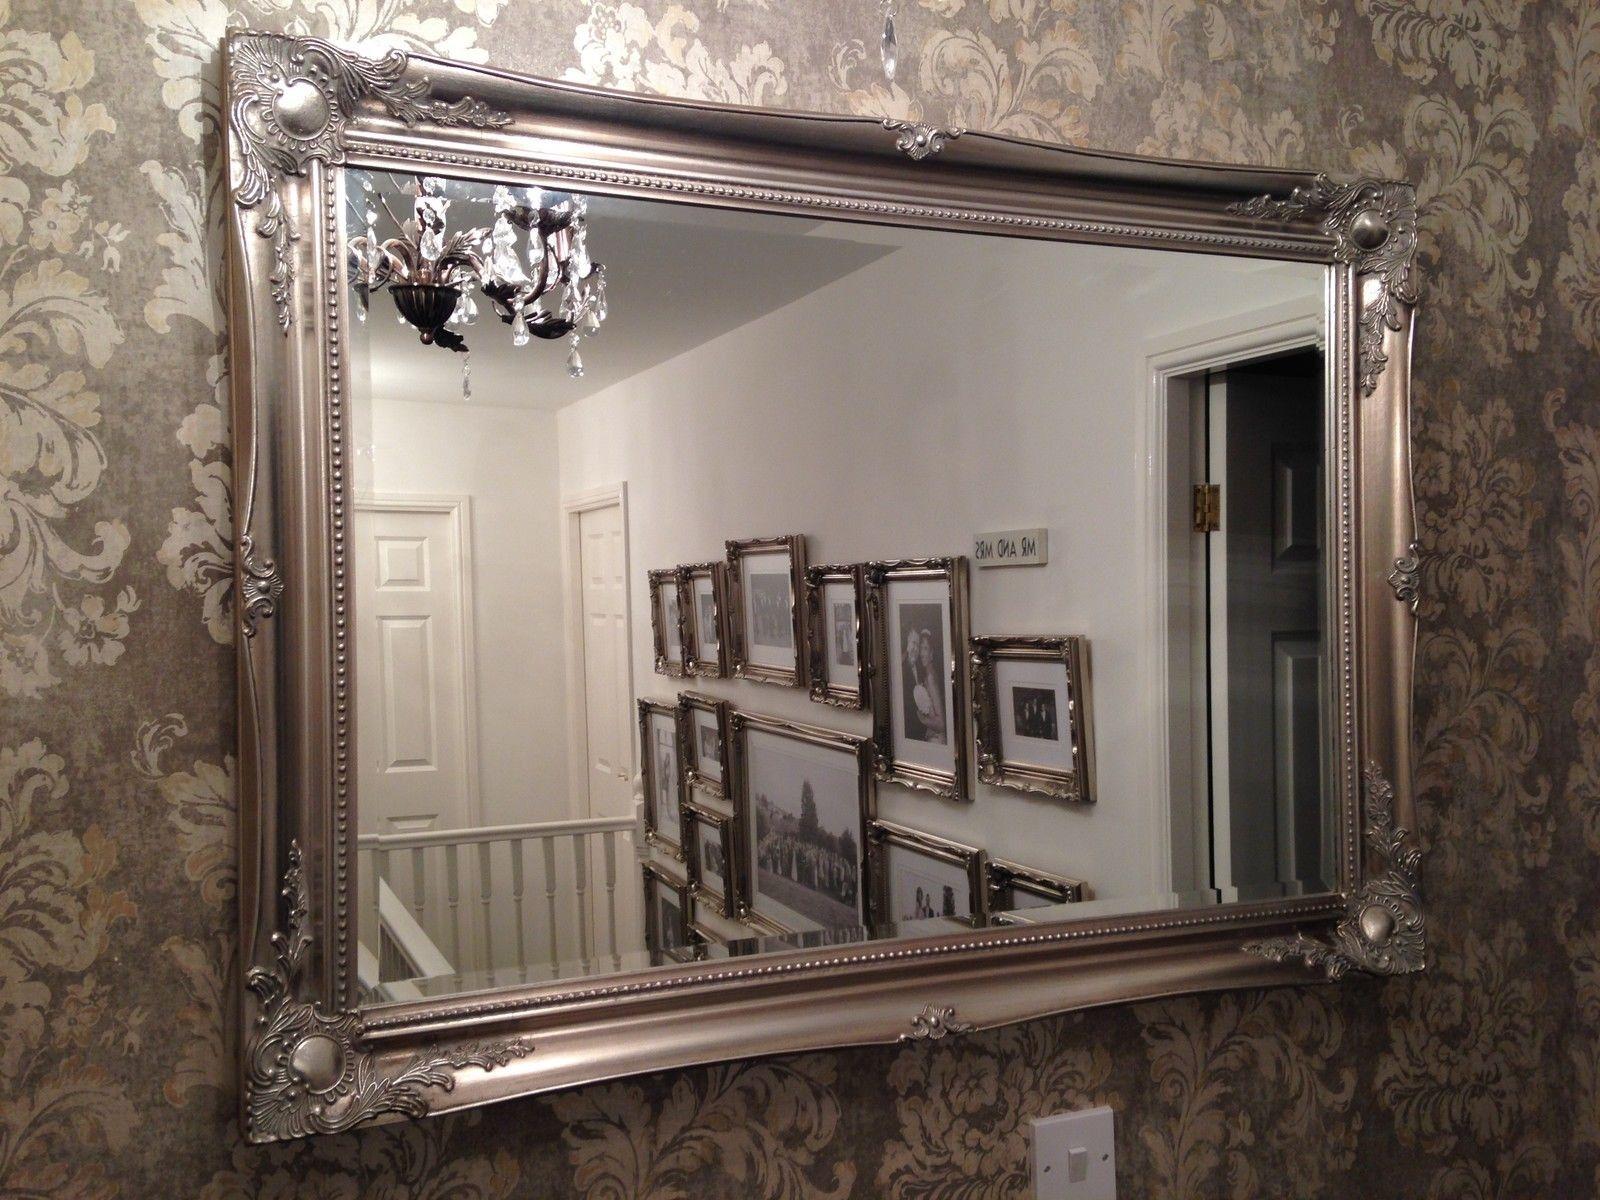 Silver Ornate Framed Long Mirror Crushed Gravel Very Large Silver Pertaining To Very Large Ornate Mirrors (Image 14 of 15)